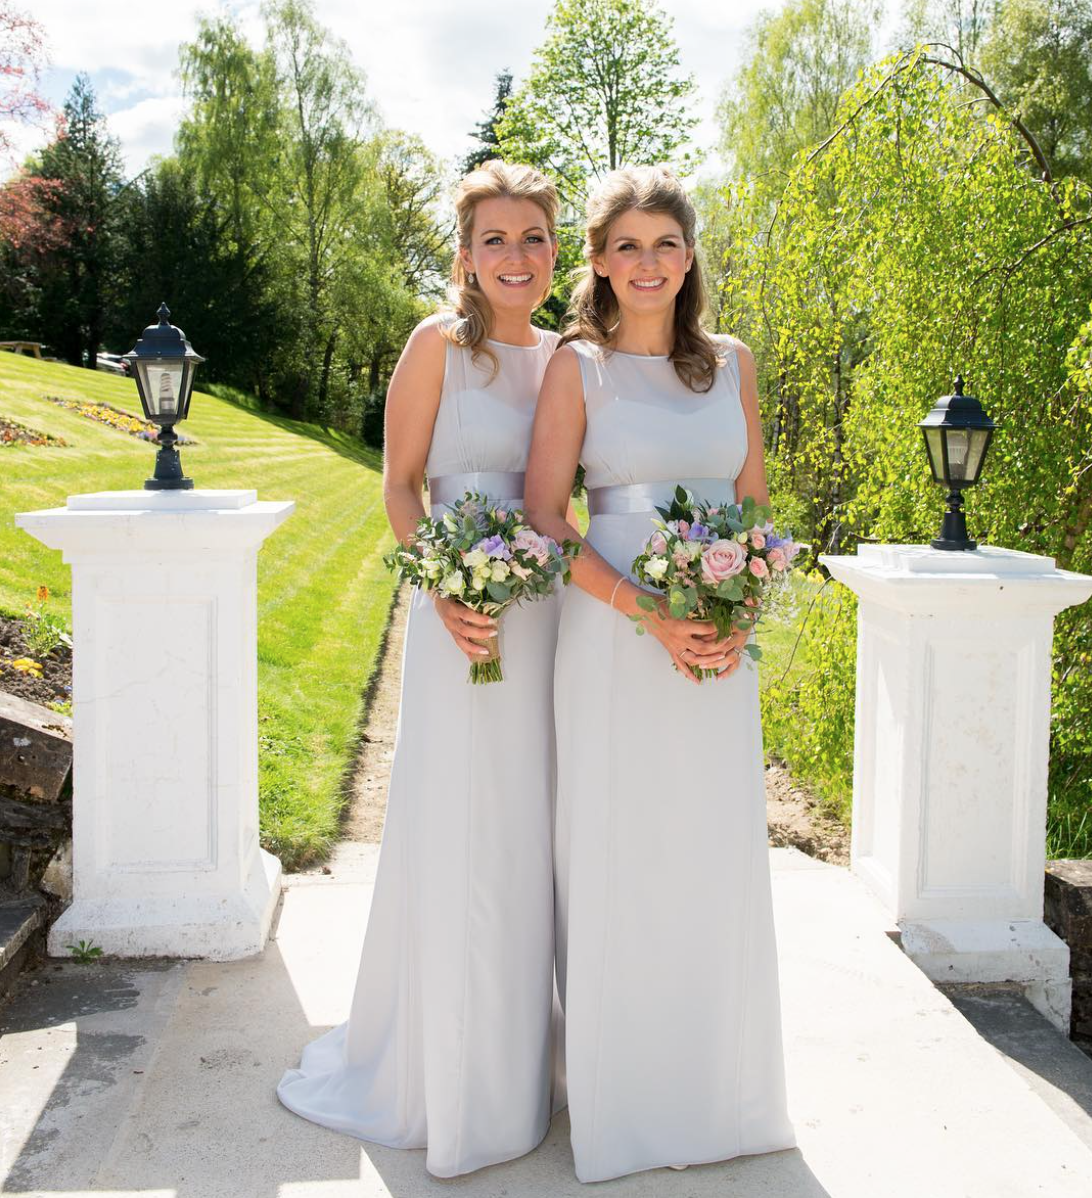 Dazzling dove grey dresses beautiful maids to measure bridesmaids dazzling dove grey dresses beautiful maids to measure bridesmaids in dove grey charlotte dresses ombrellifo Choice Image